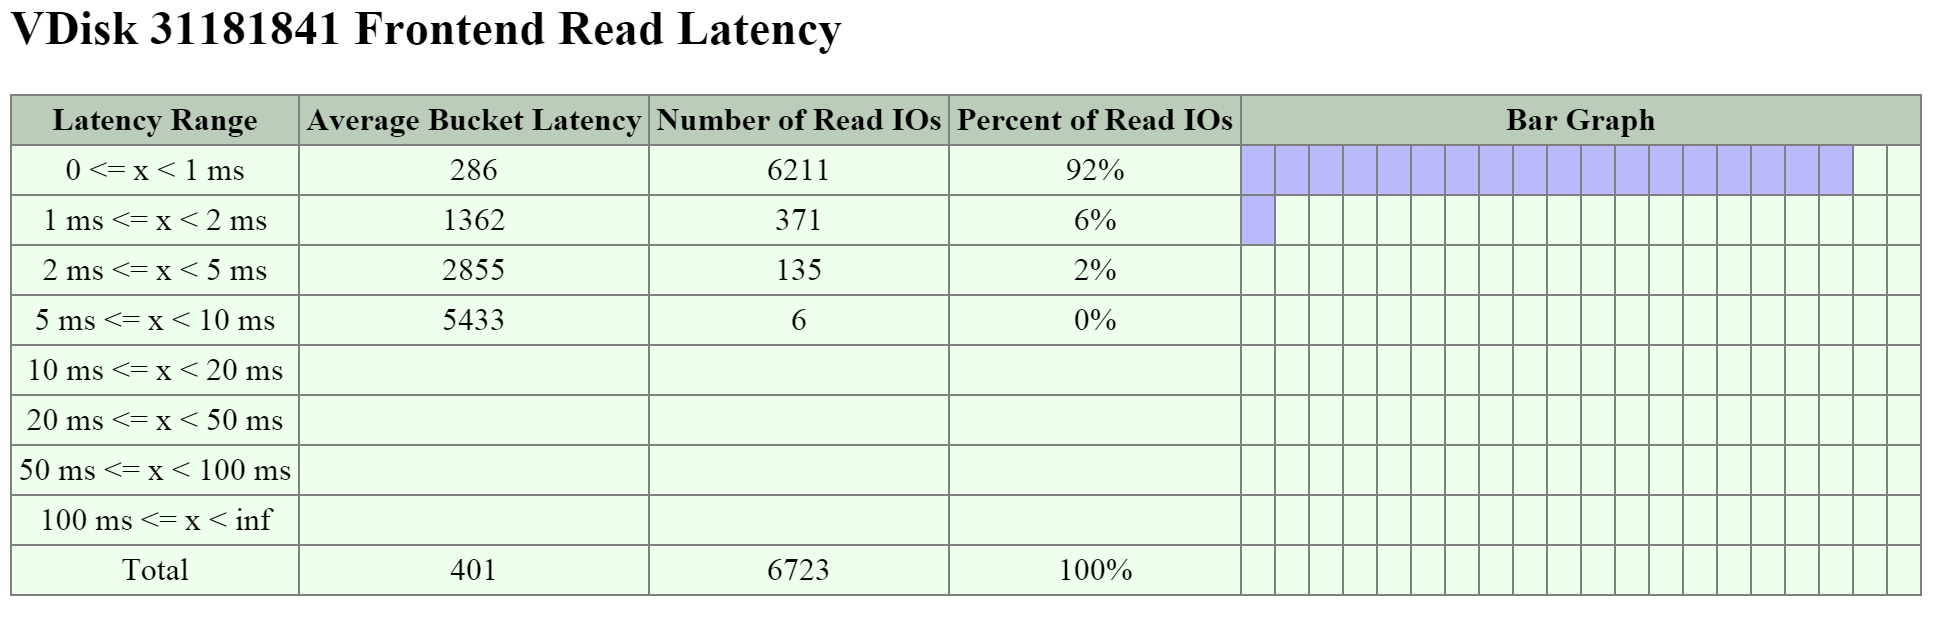 2009 Page - vDisk Stats - Frontend Read Latency